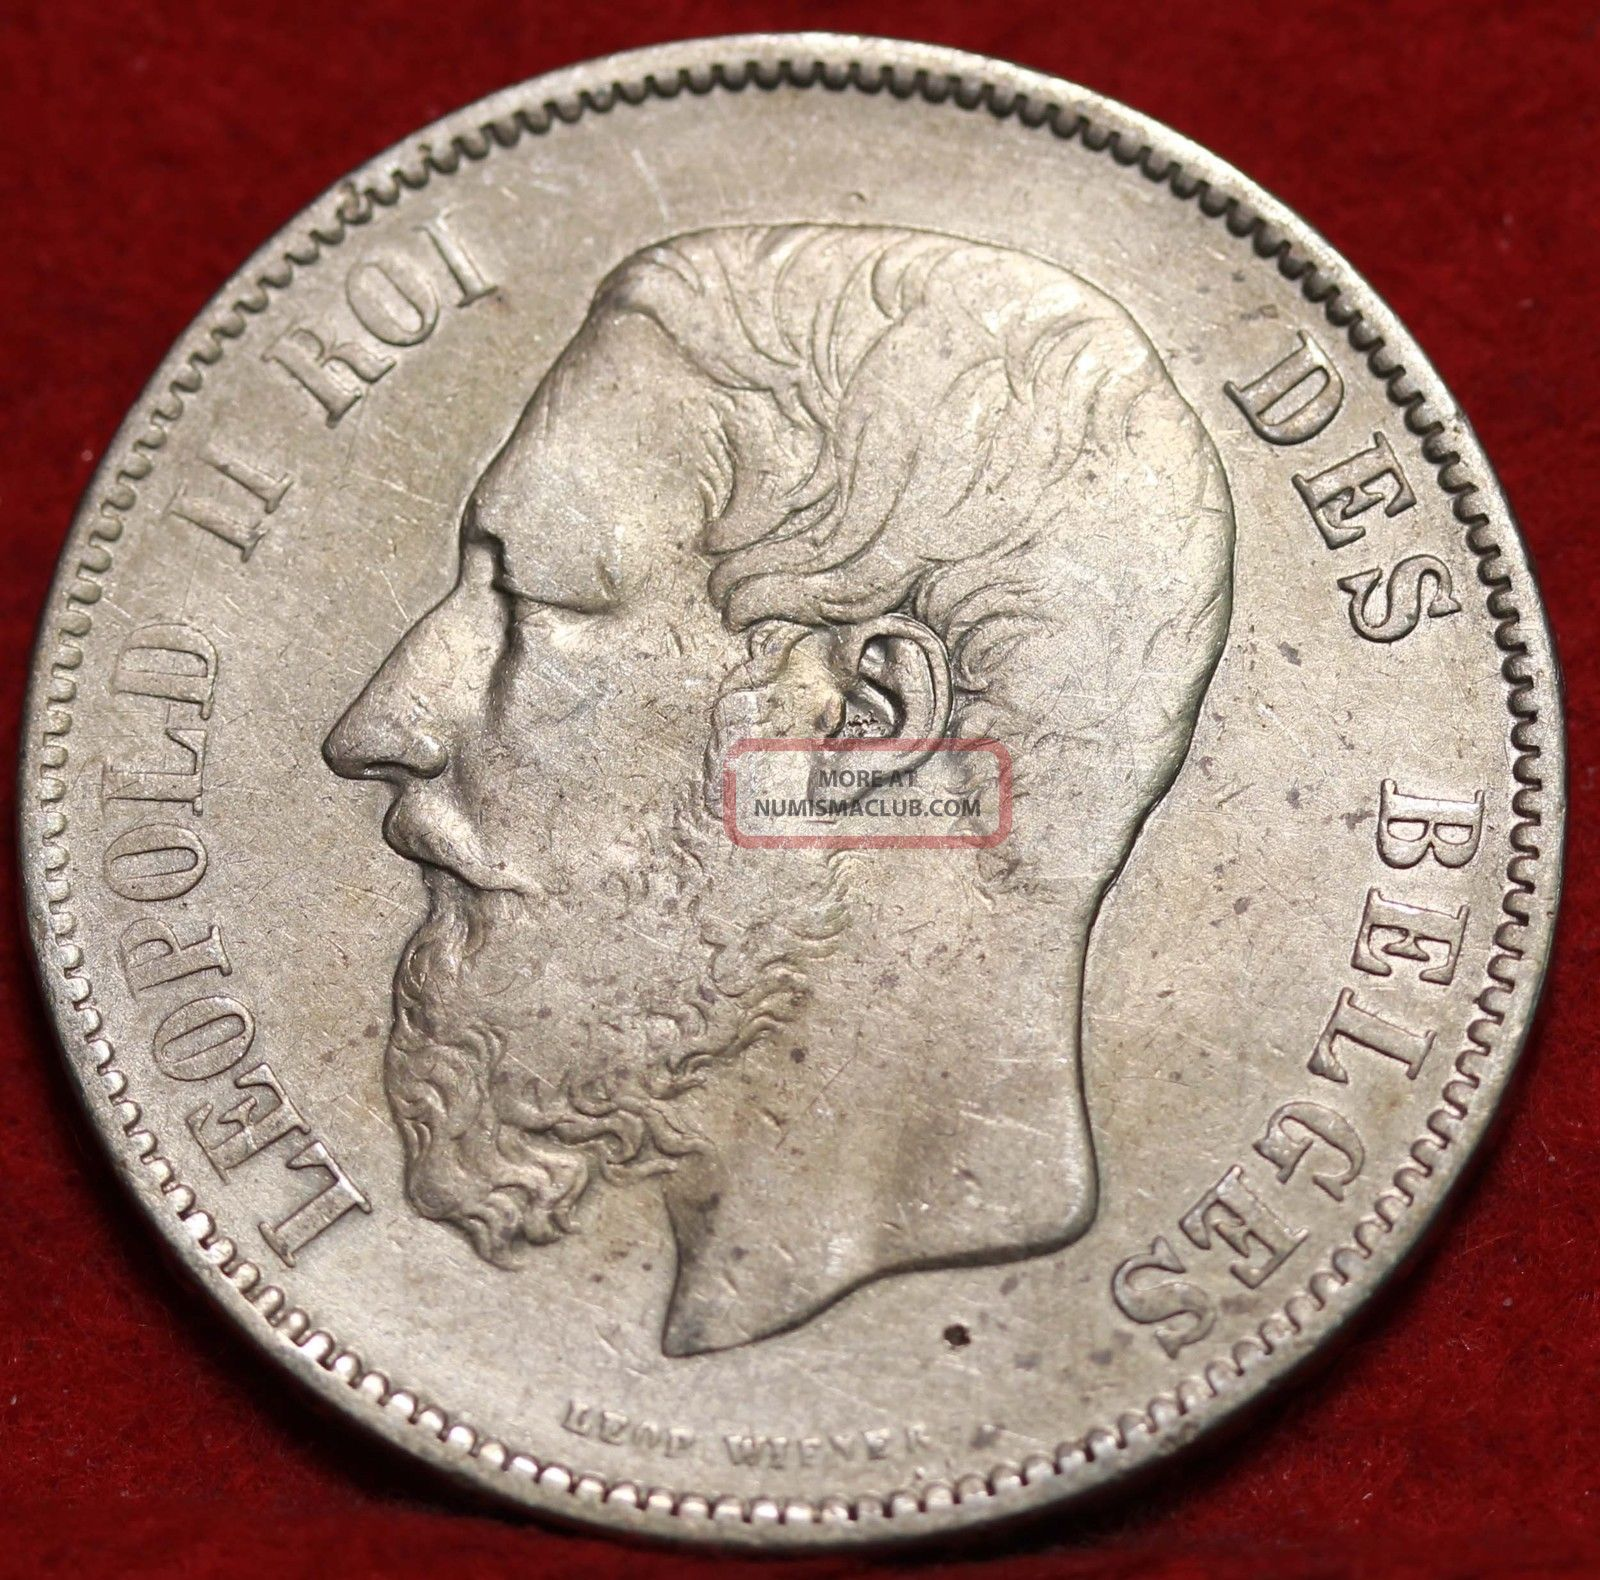 1870 Belgium 5 Francs Silver Foreign Coin S/h Europe photo